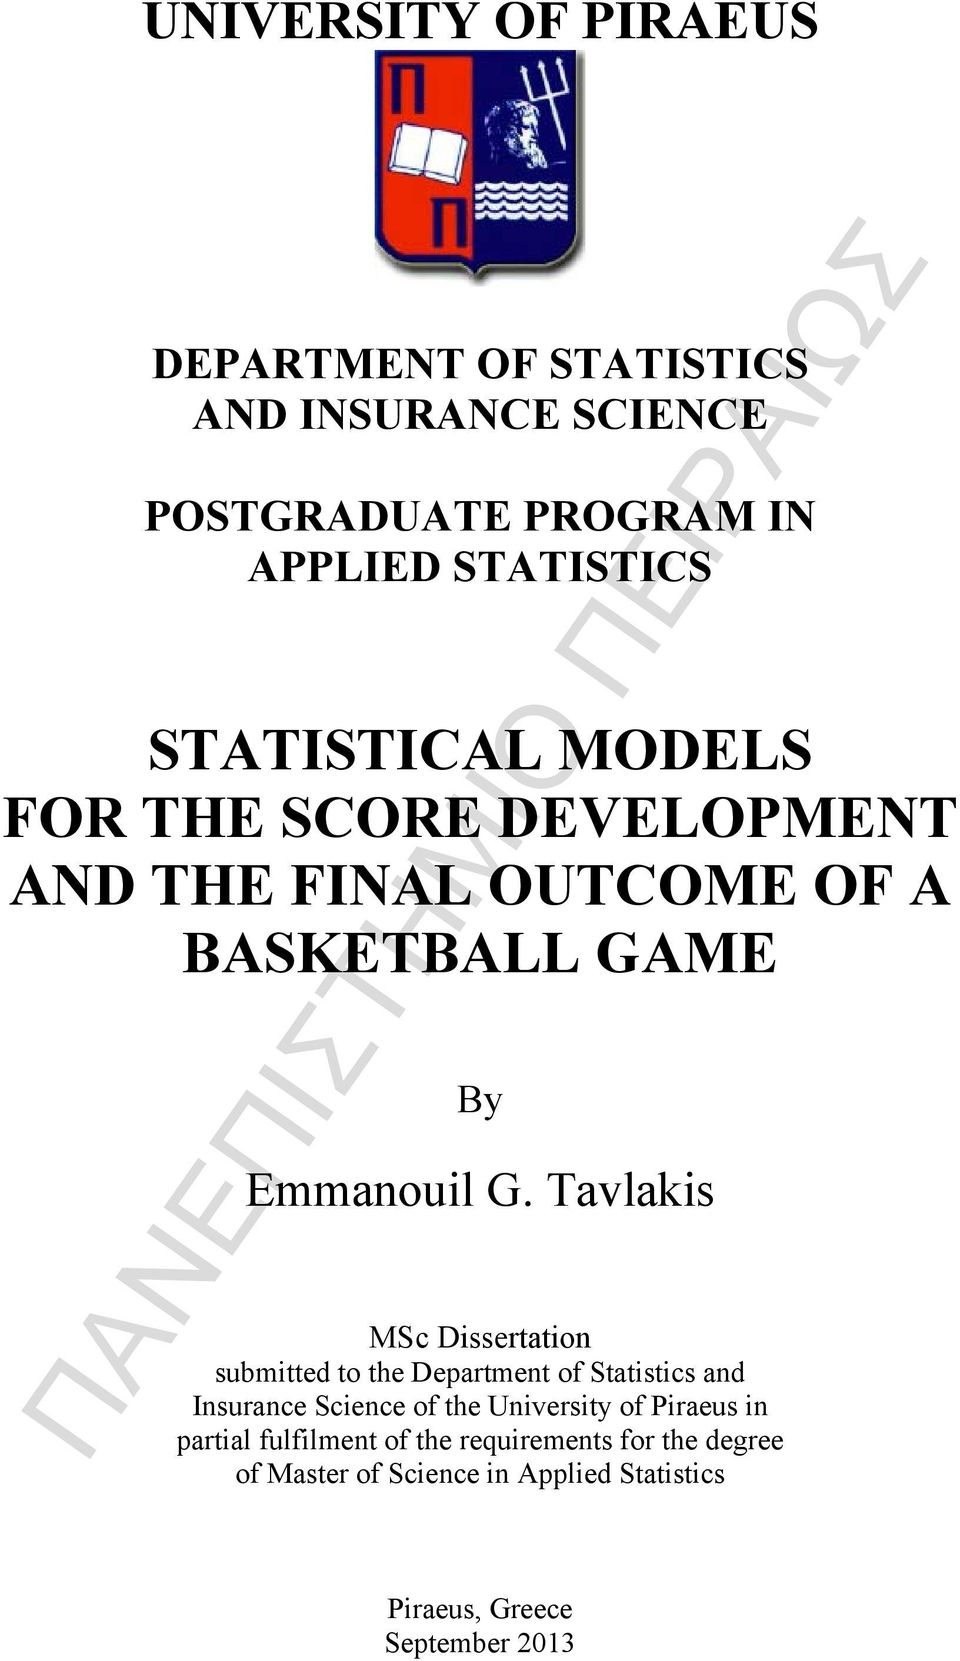 Tavlakis MSc Dissertation submitted to the Department of Statistics and Insurance Science of the University of